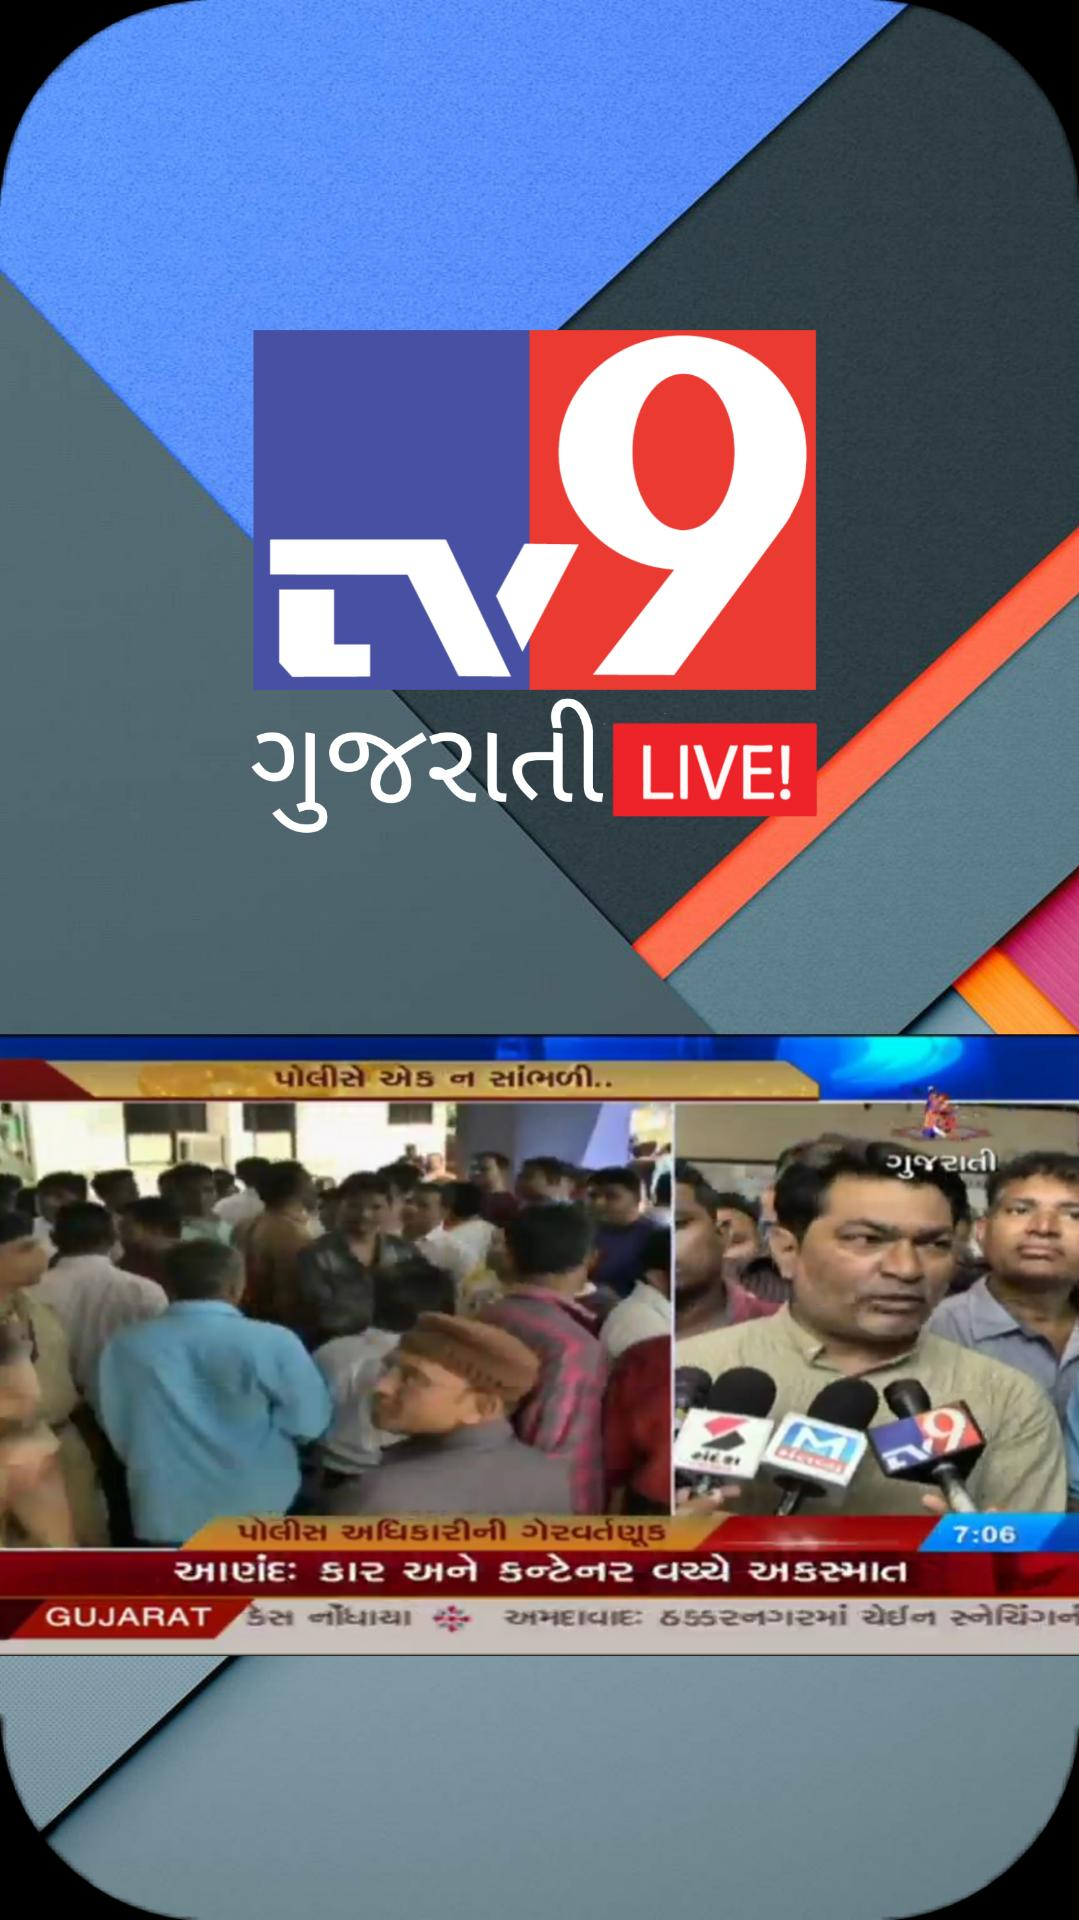 TV9 Gujarati LIVE News for Android - APK Download